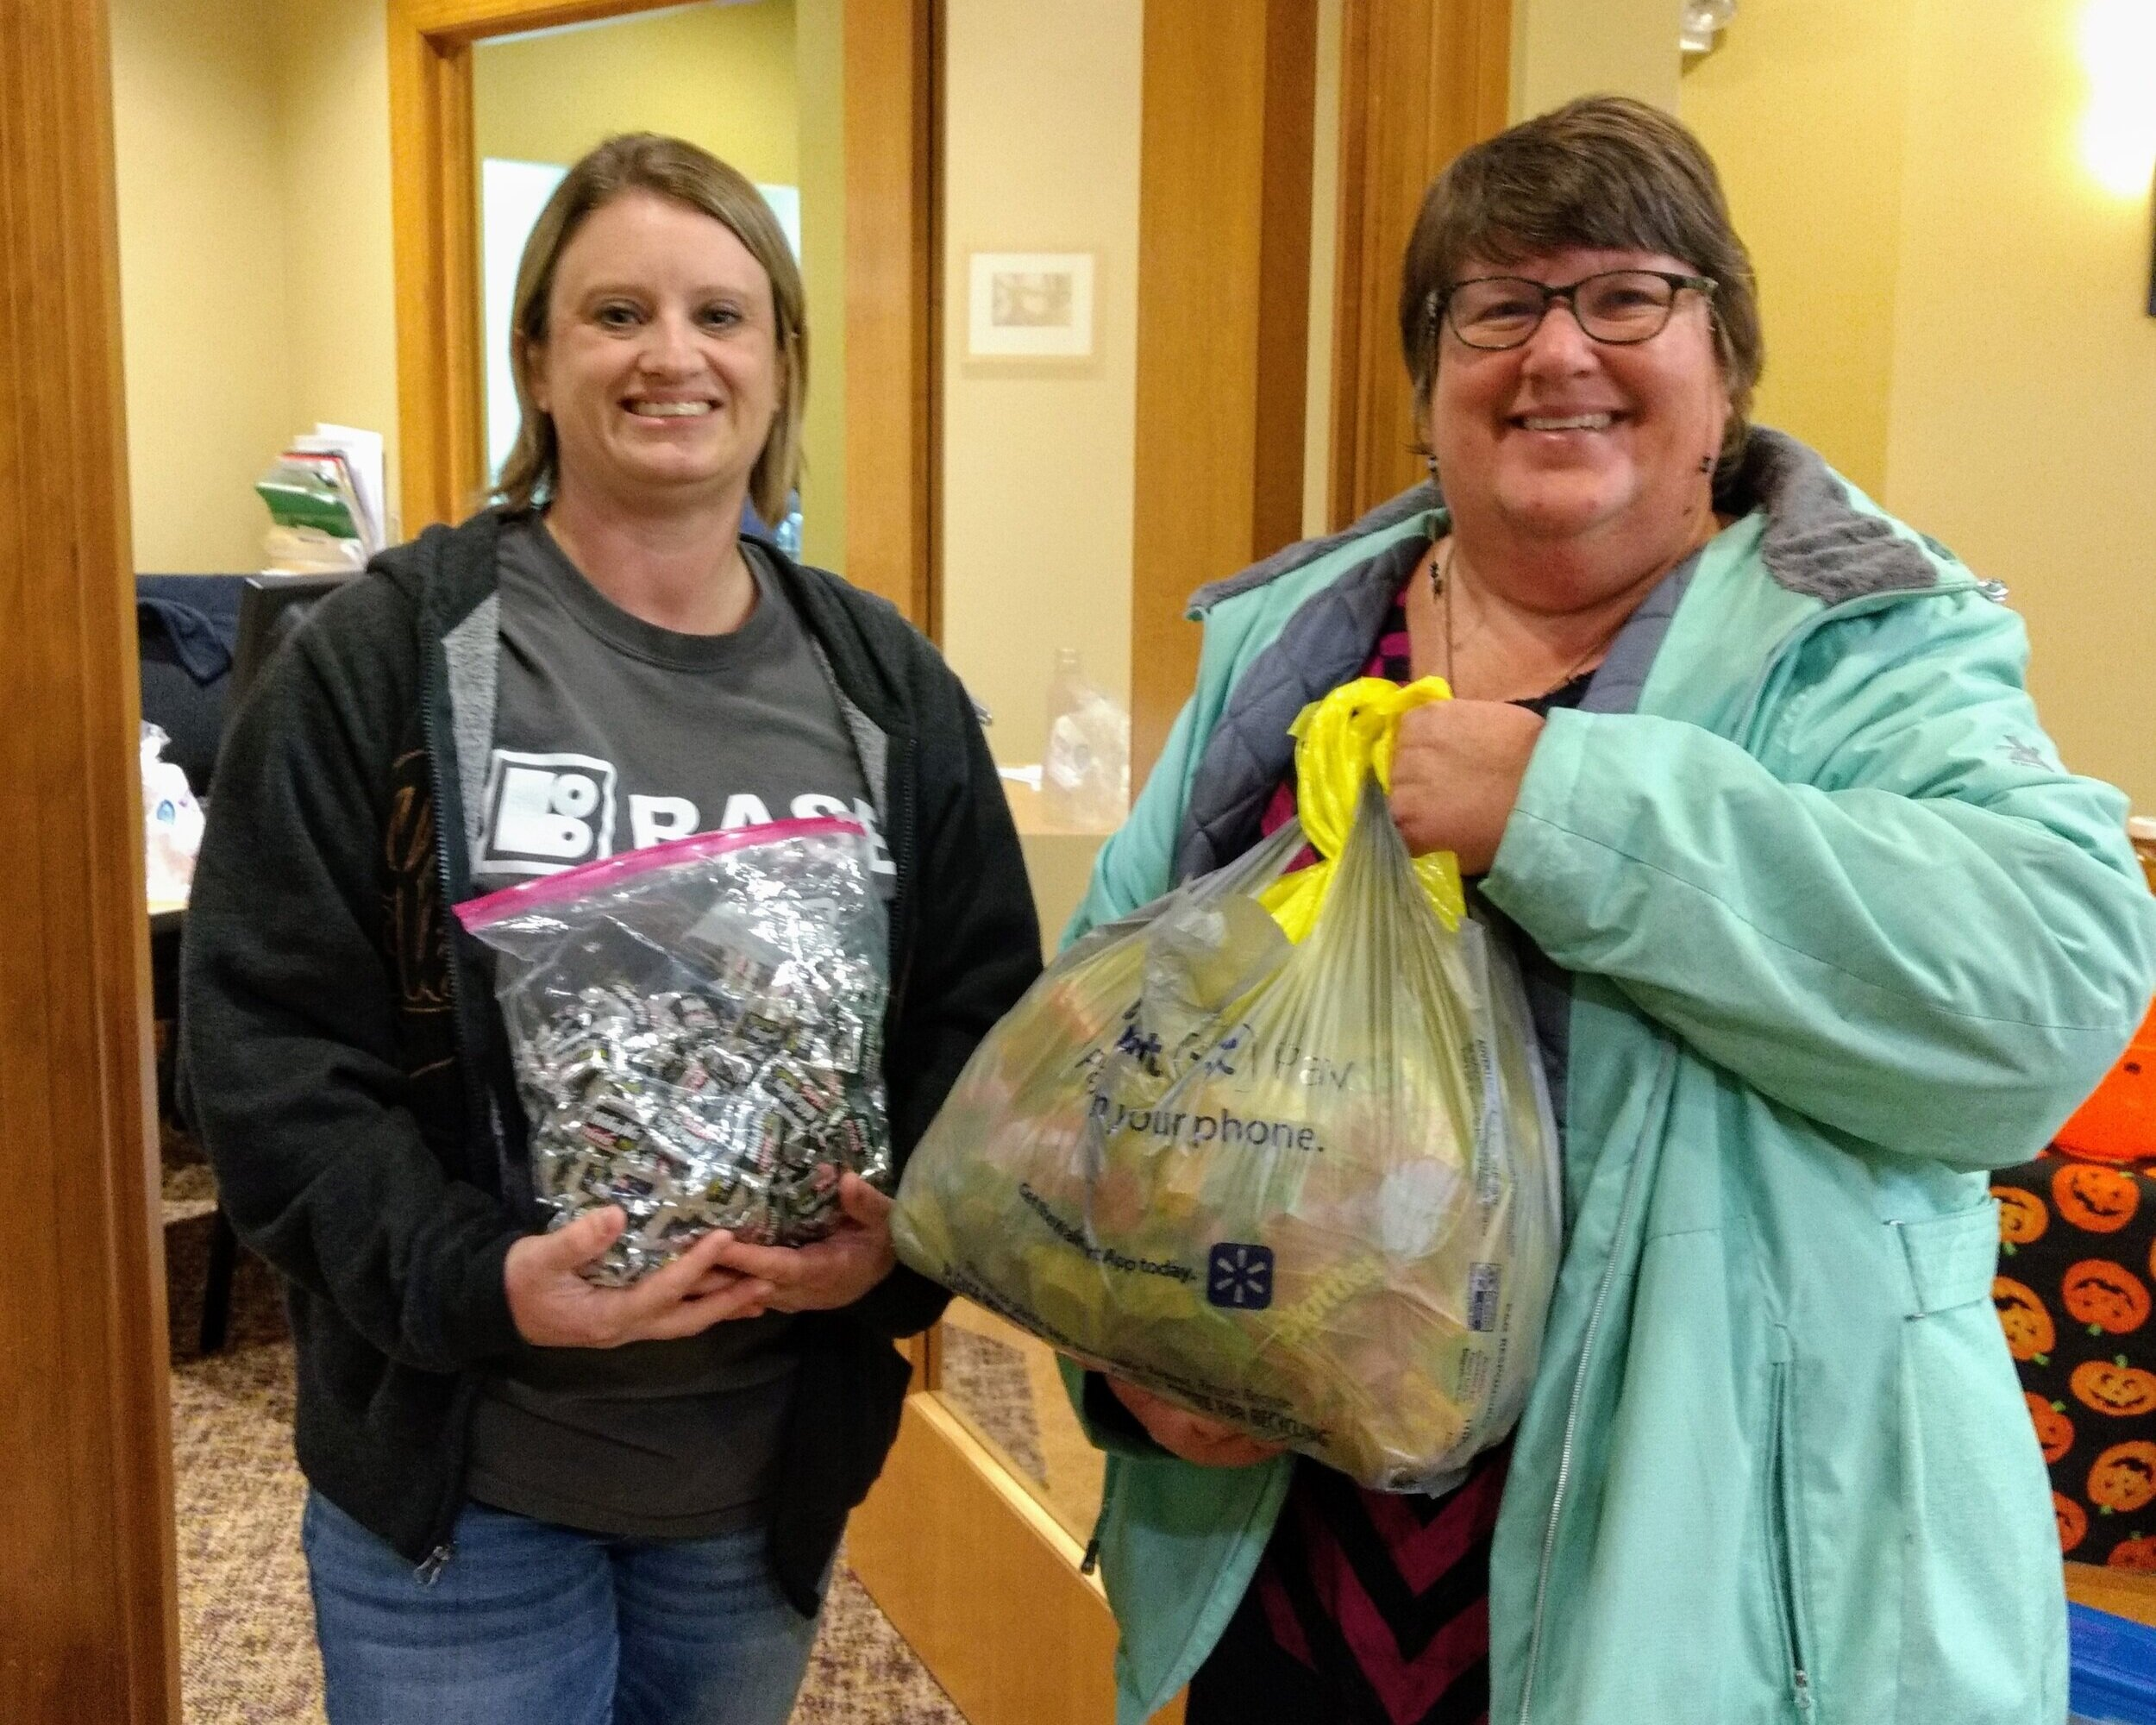 - Ms Melissa and Ms Beth delivered the candy that was collected to Rock River Dental on Monday, November 4th, 2019